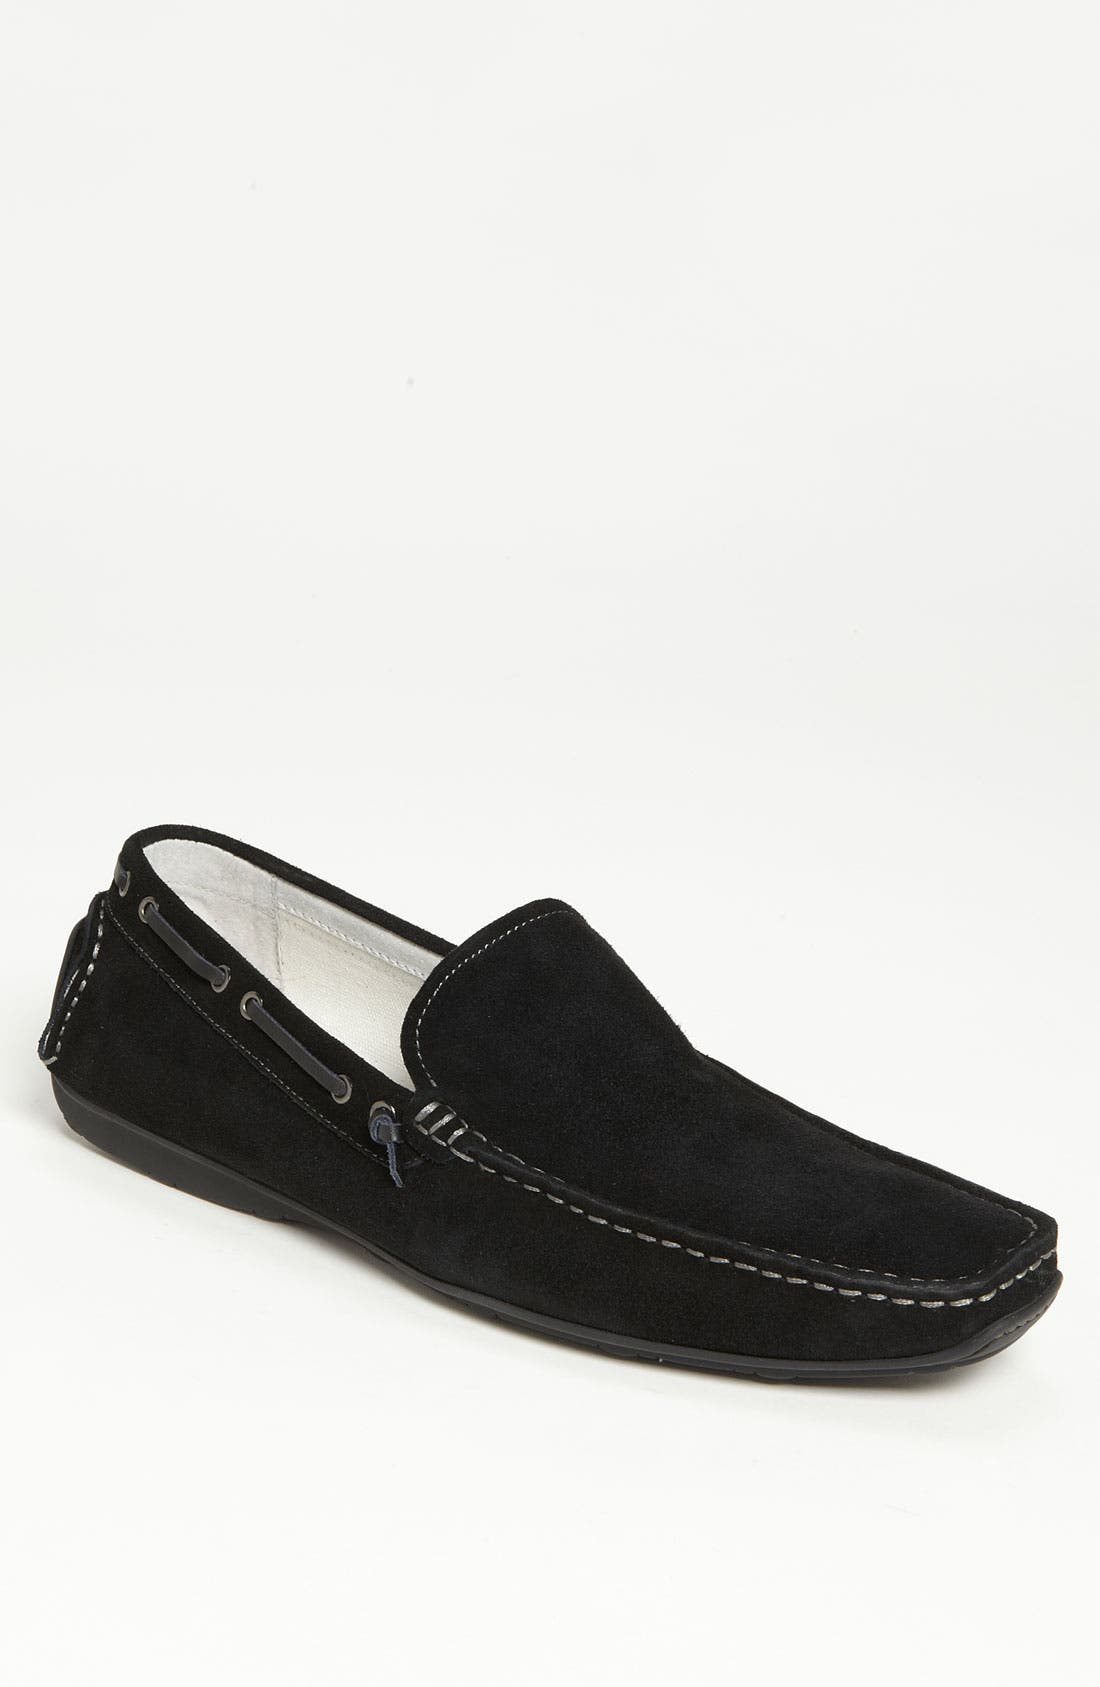 Alternate Image 1 Selected - Kenneth Cole New York 'All and Only' Driving Shoe (Online Only)